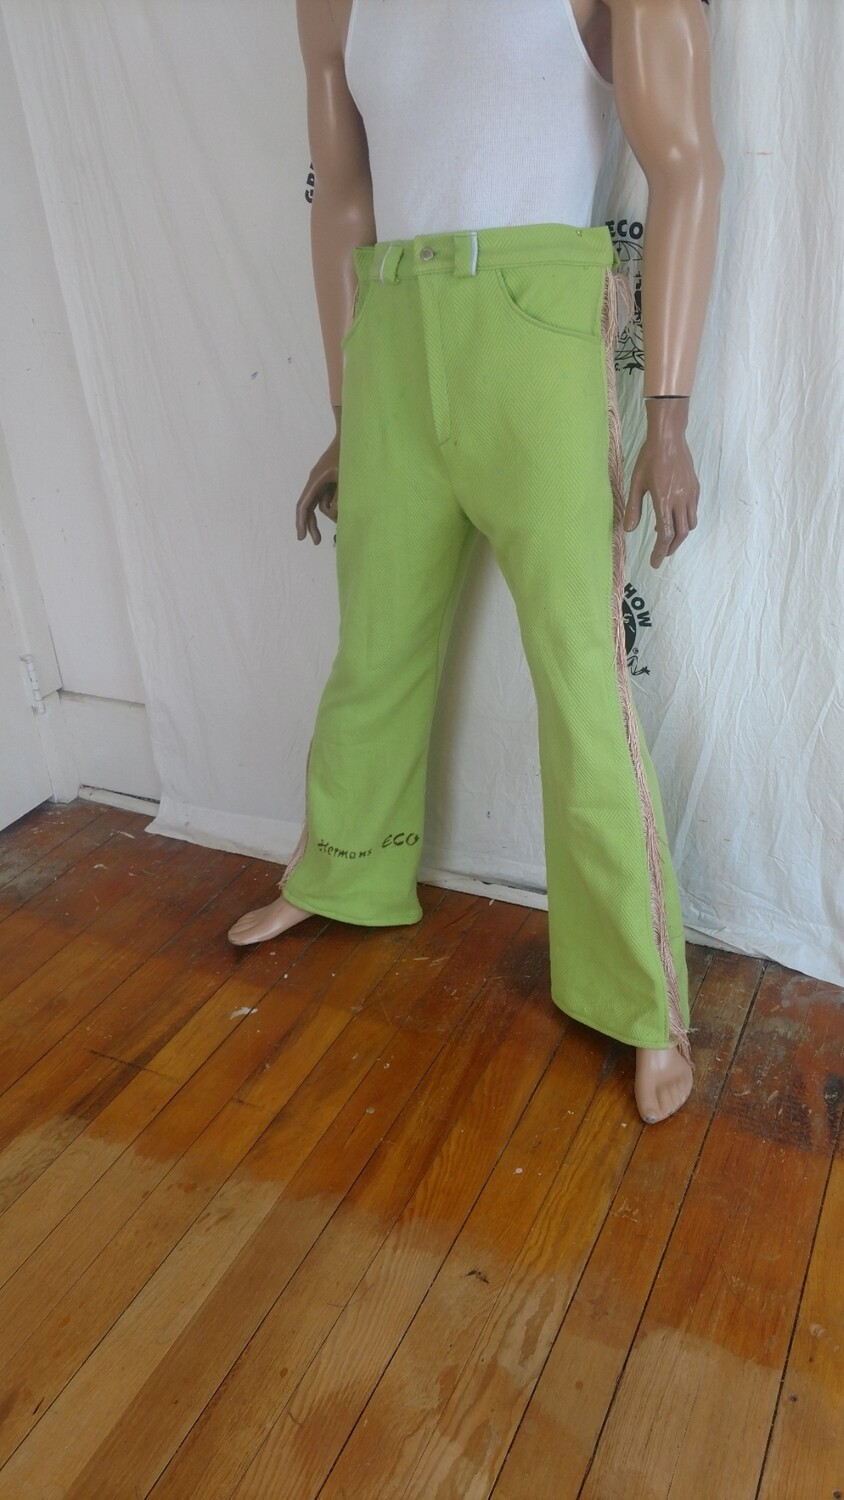 Hermans Eco mens green fringed bell pants jeans